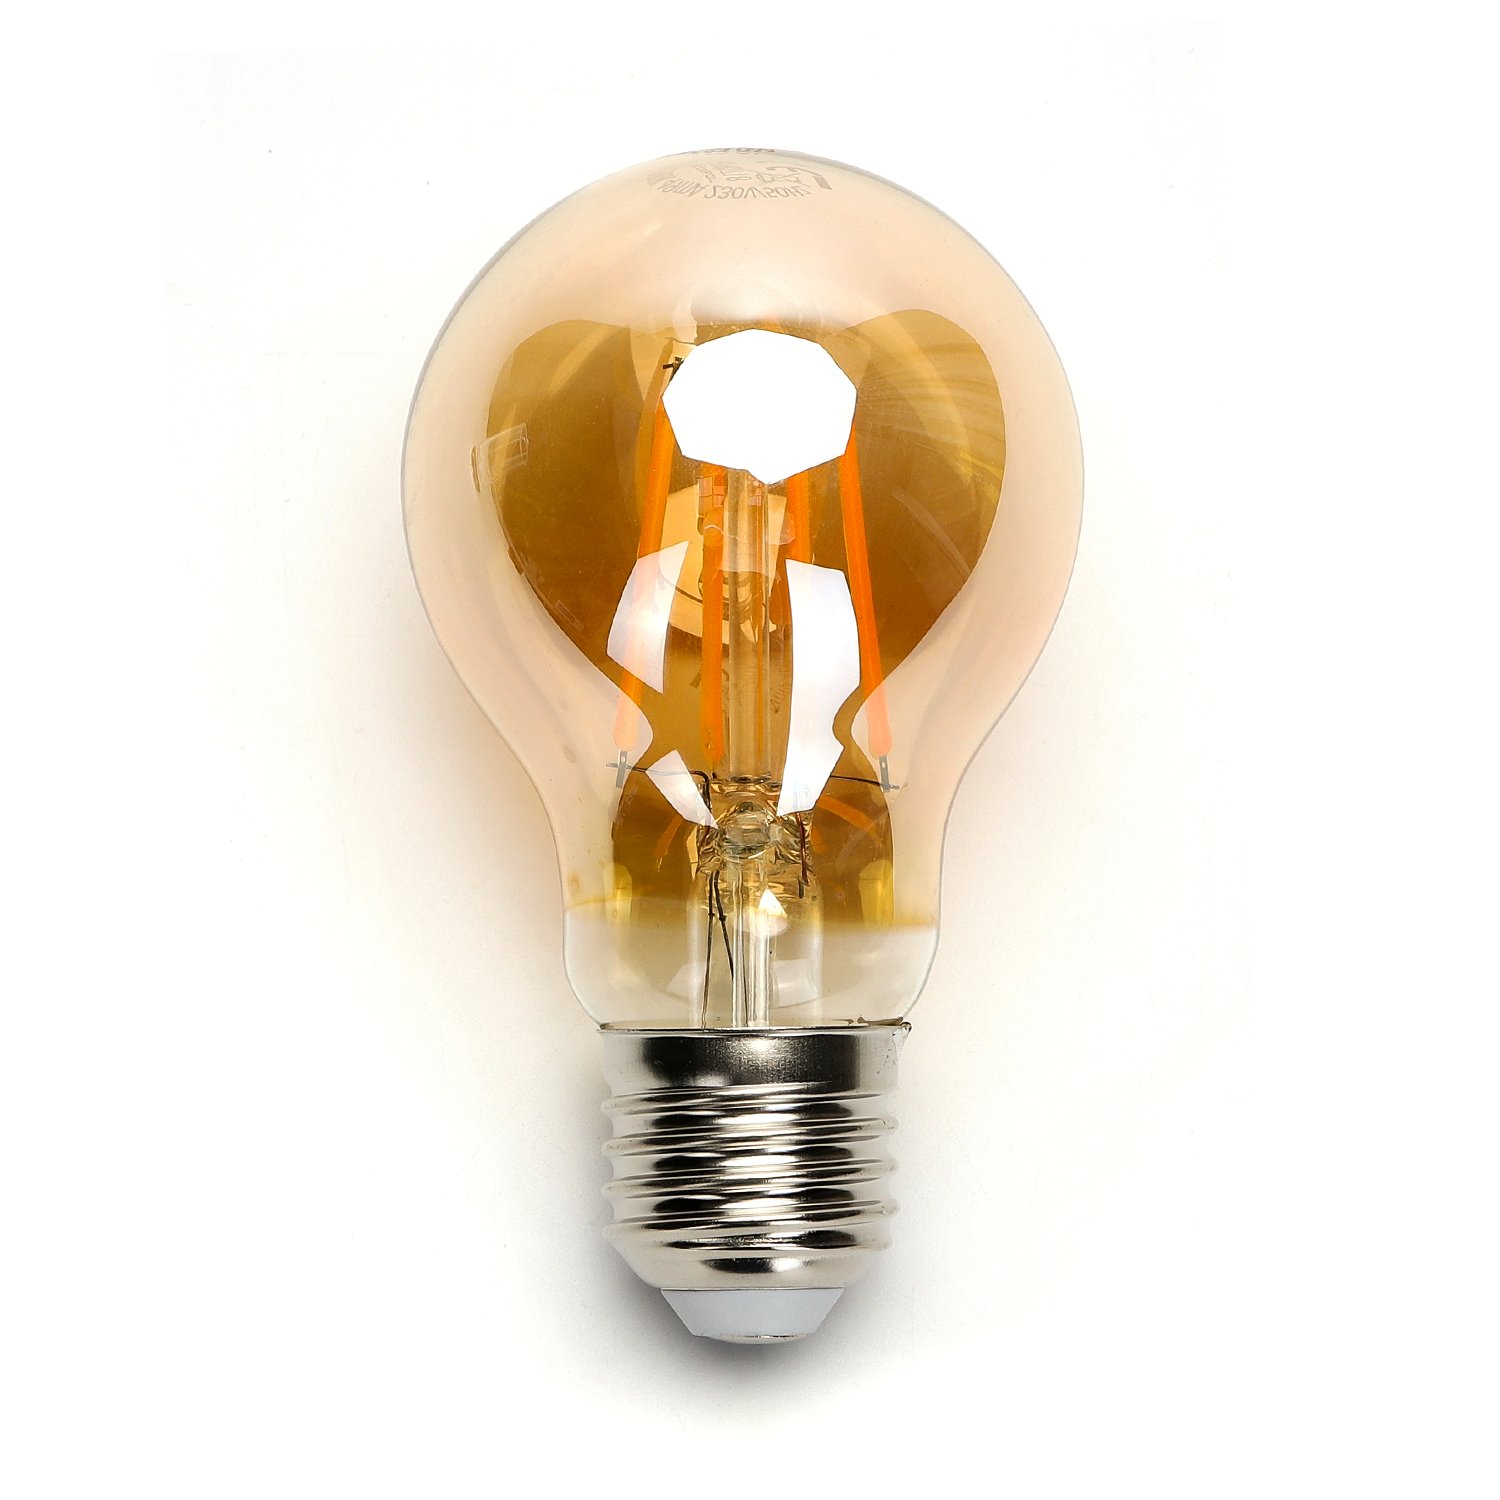 LED amber lamp filament 4 Watt grote fitting E27 2200K warm wit - lamp